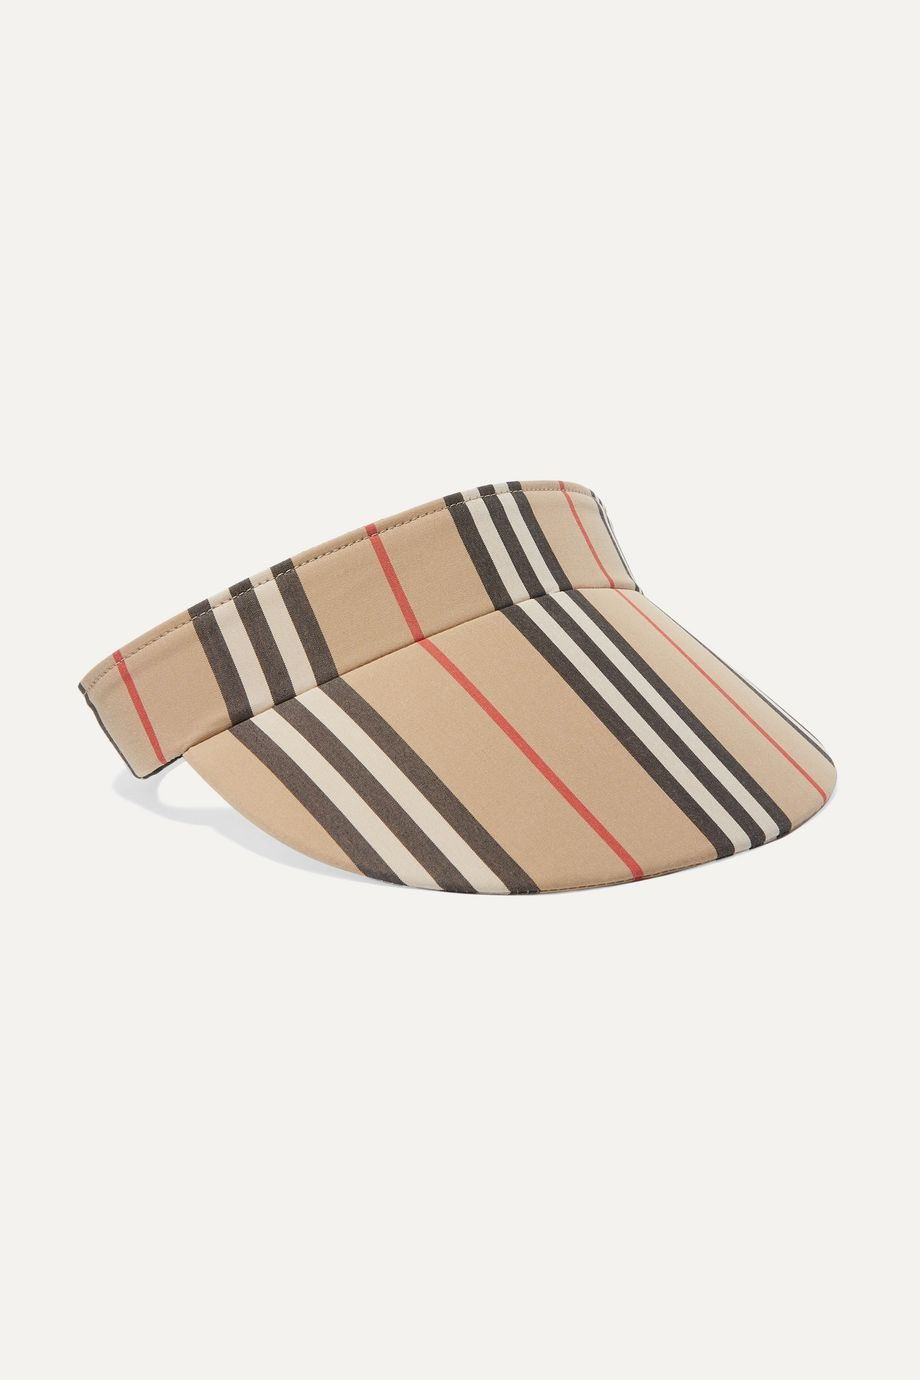 Burberry Striped cotton-canvas visor